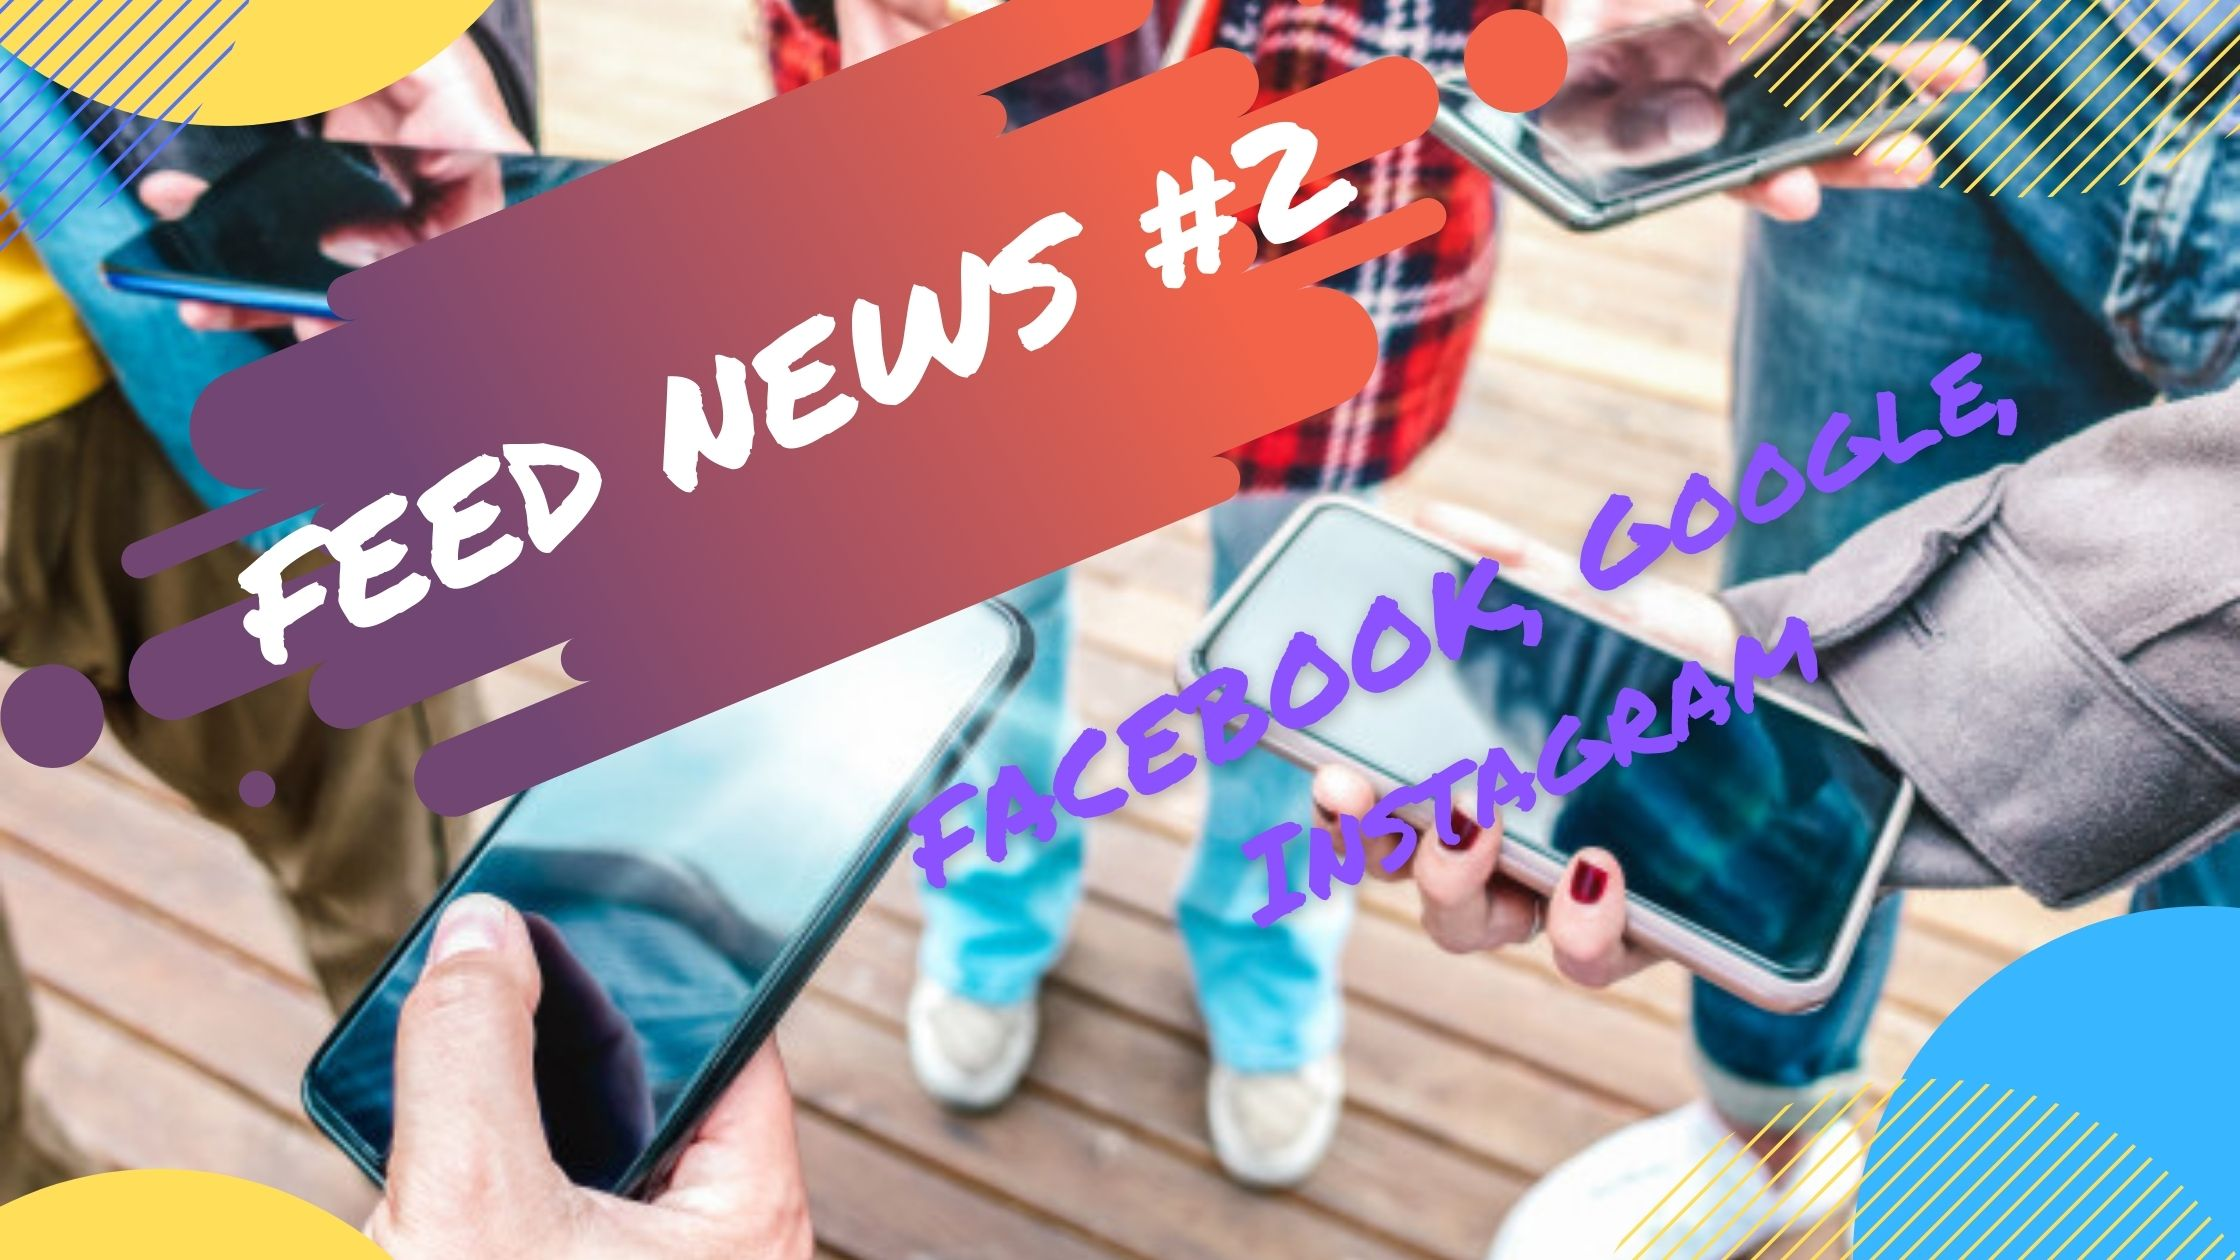 Feed News #2 Août : Facebook, Google, Instagram